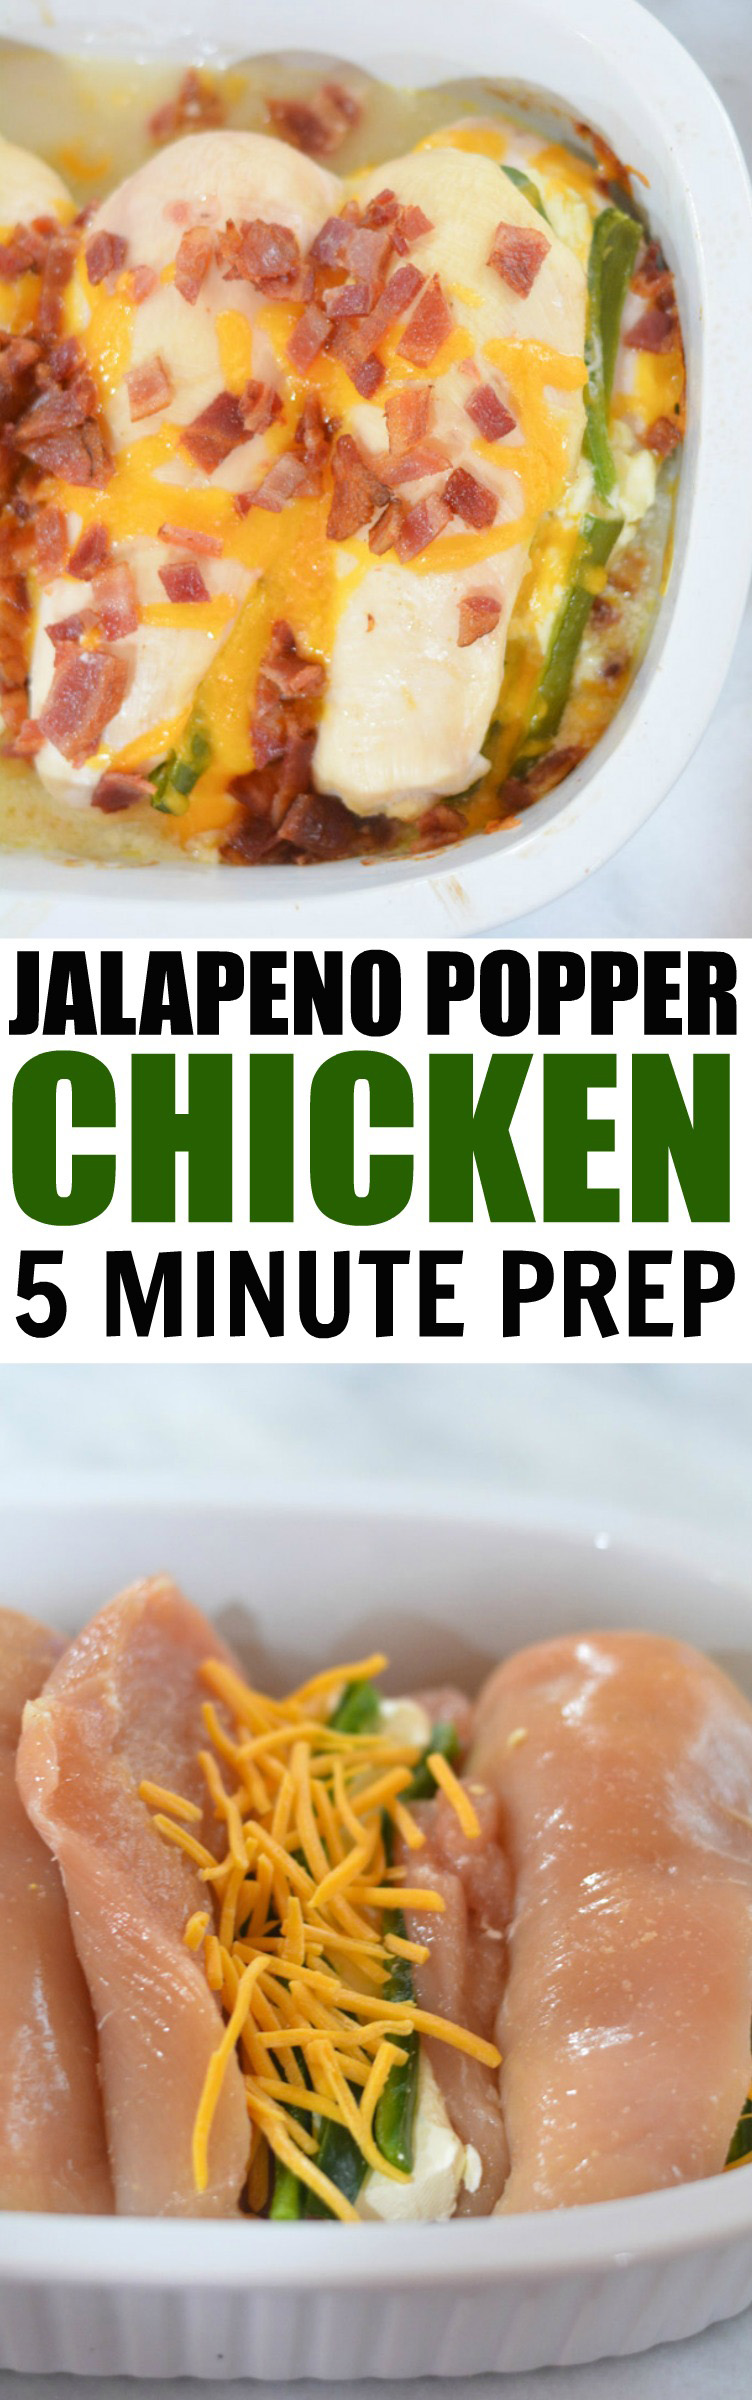 Jalapeno Chicken